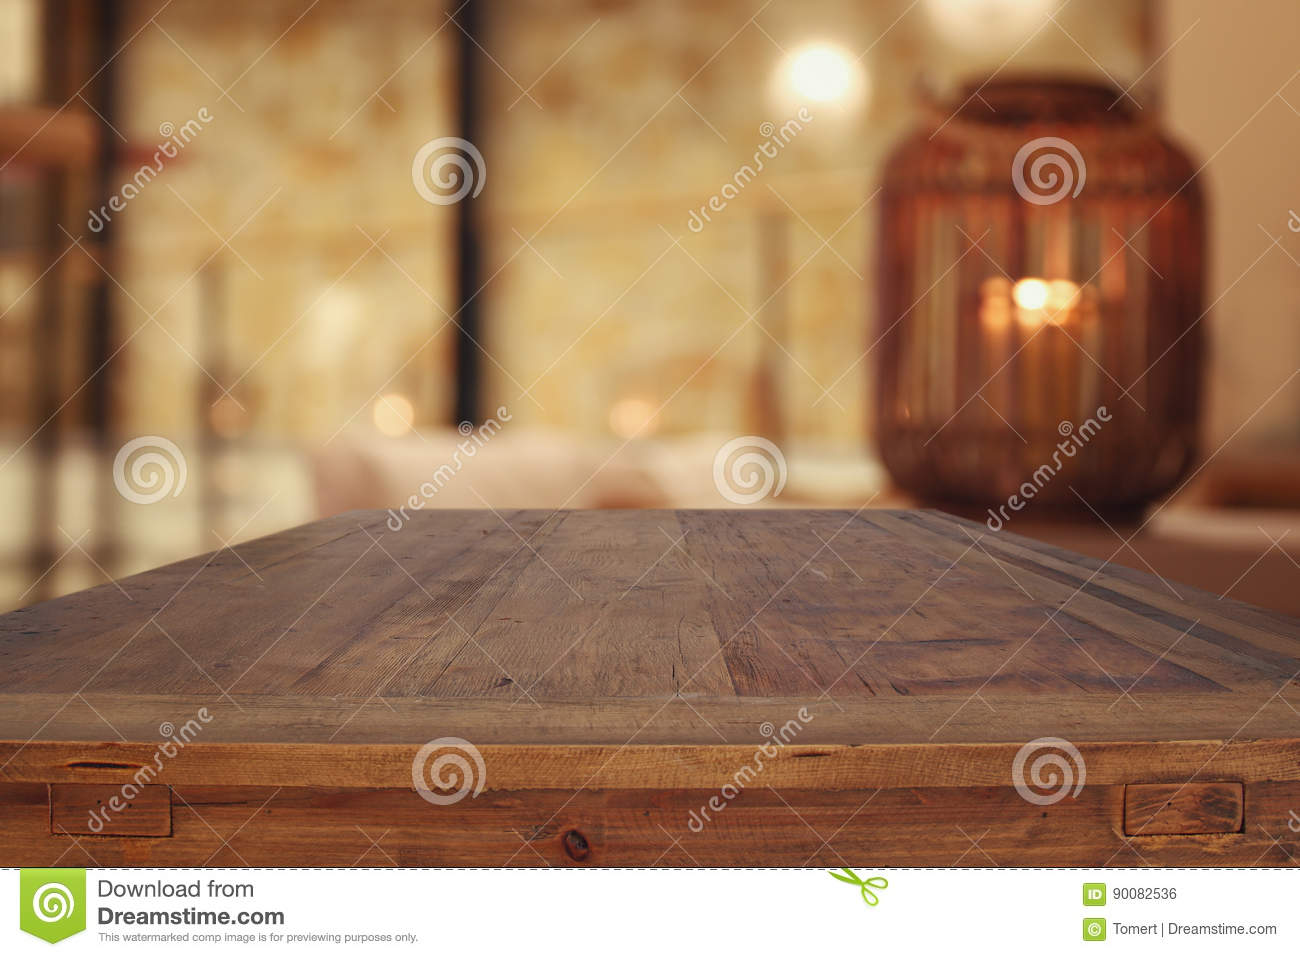 Wooden Table In Front Of Abstract Living Room Background Stock Photo